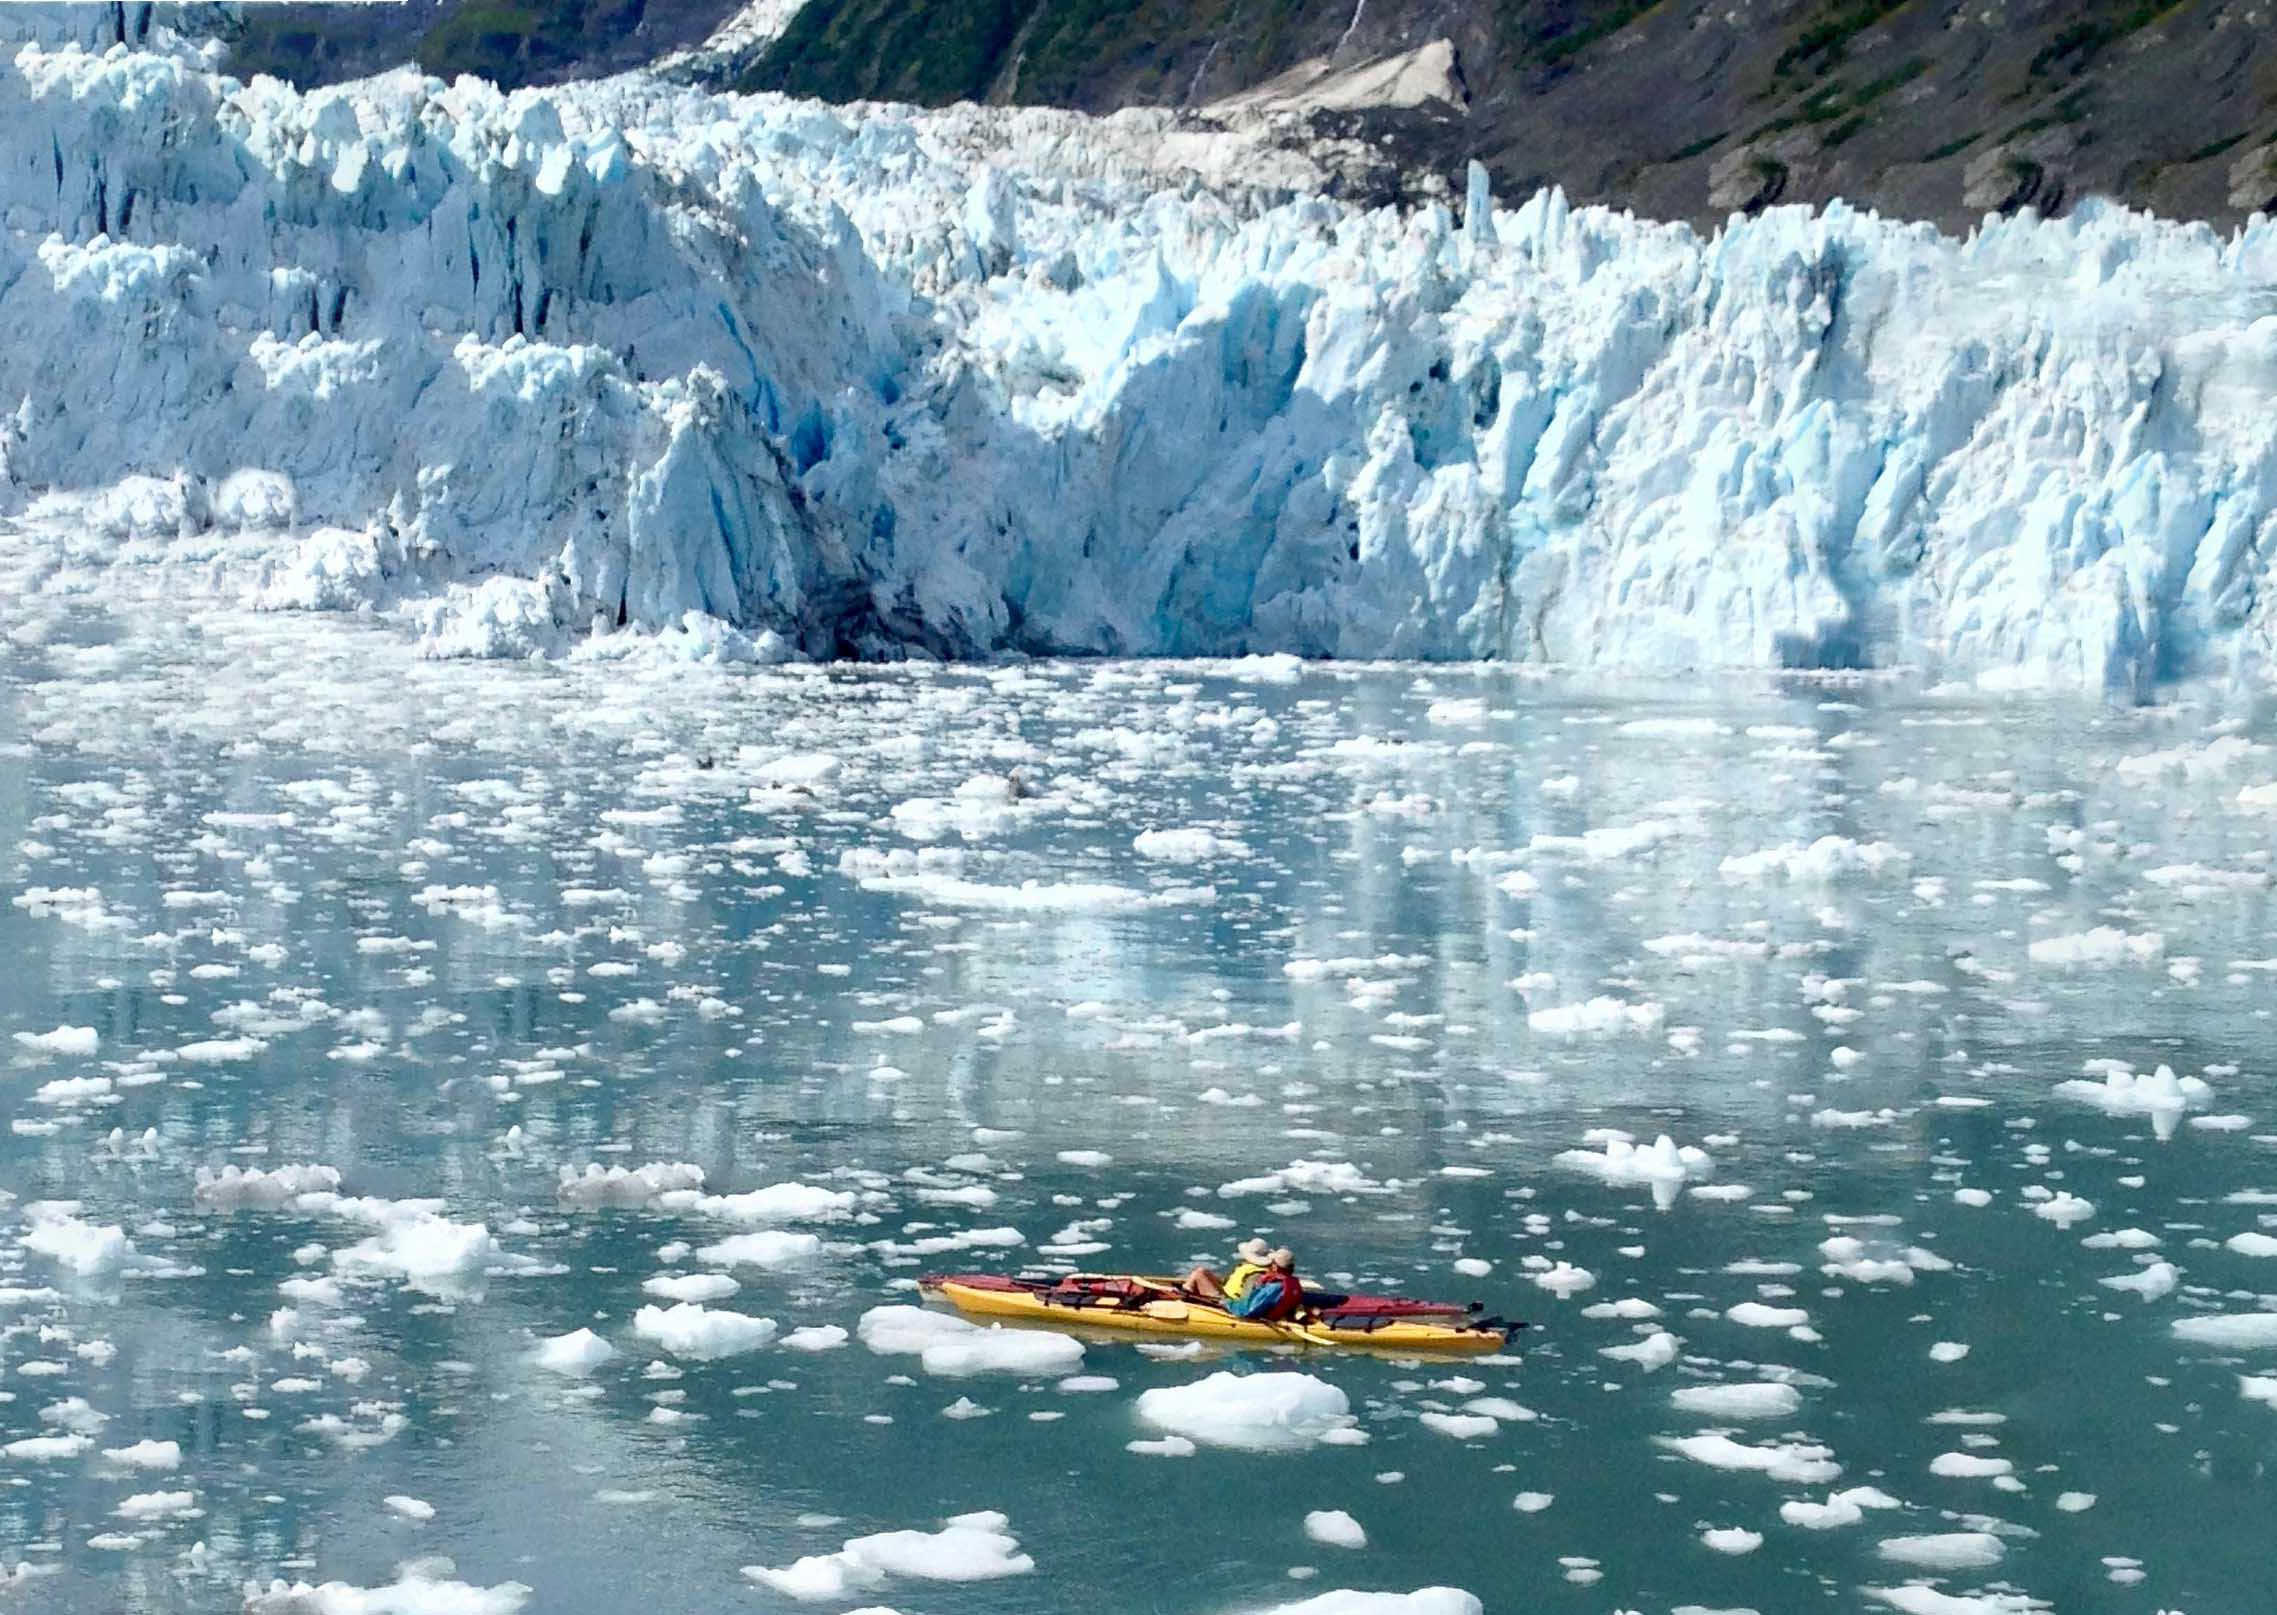 Two people kayaking at the foot of a glacier.